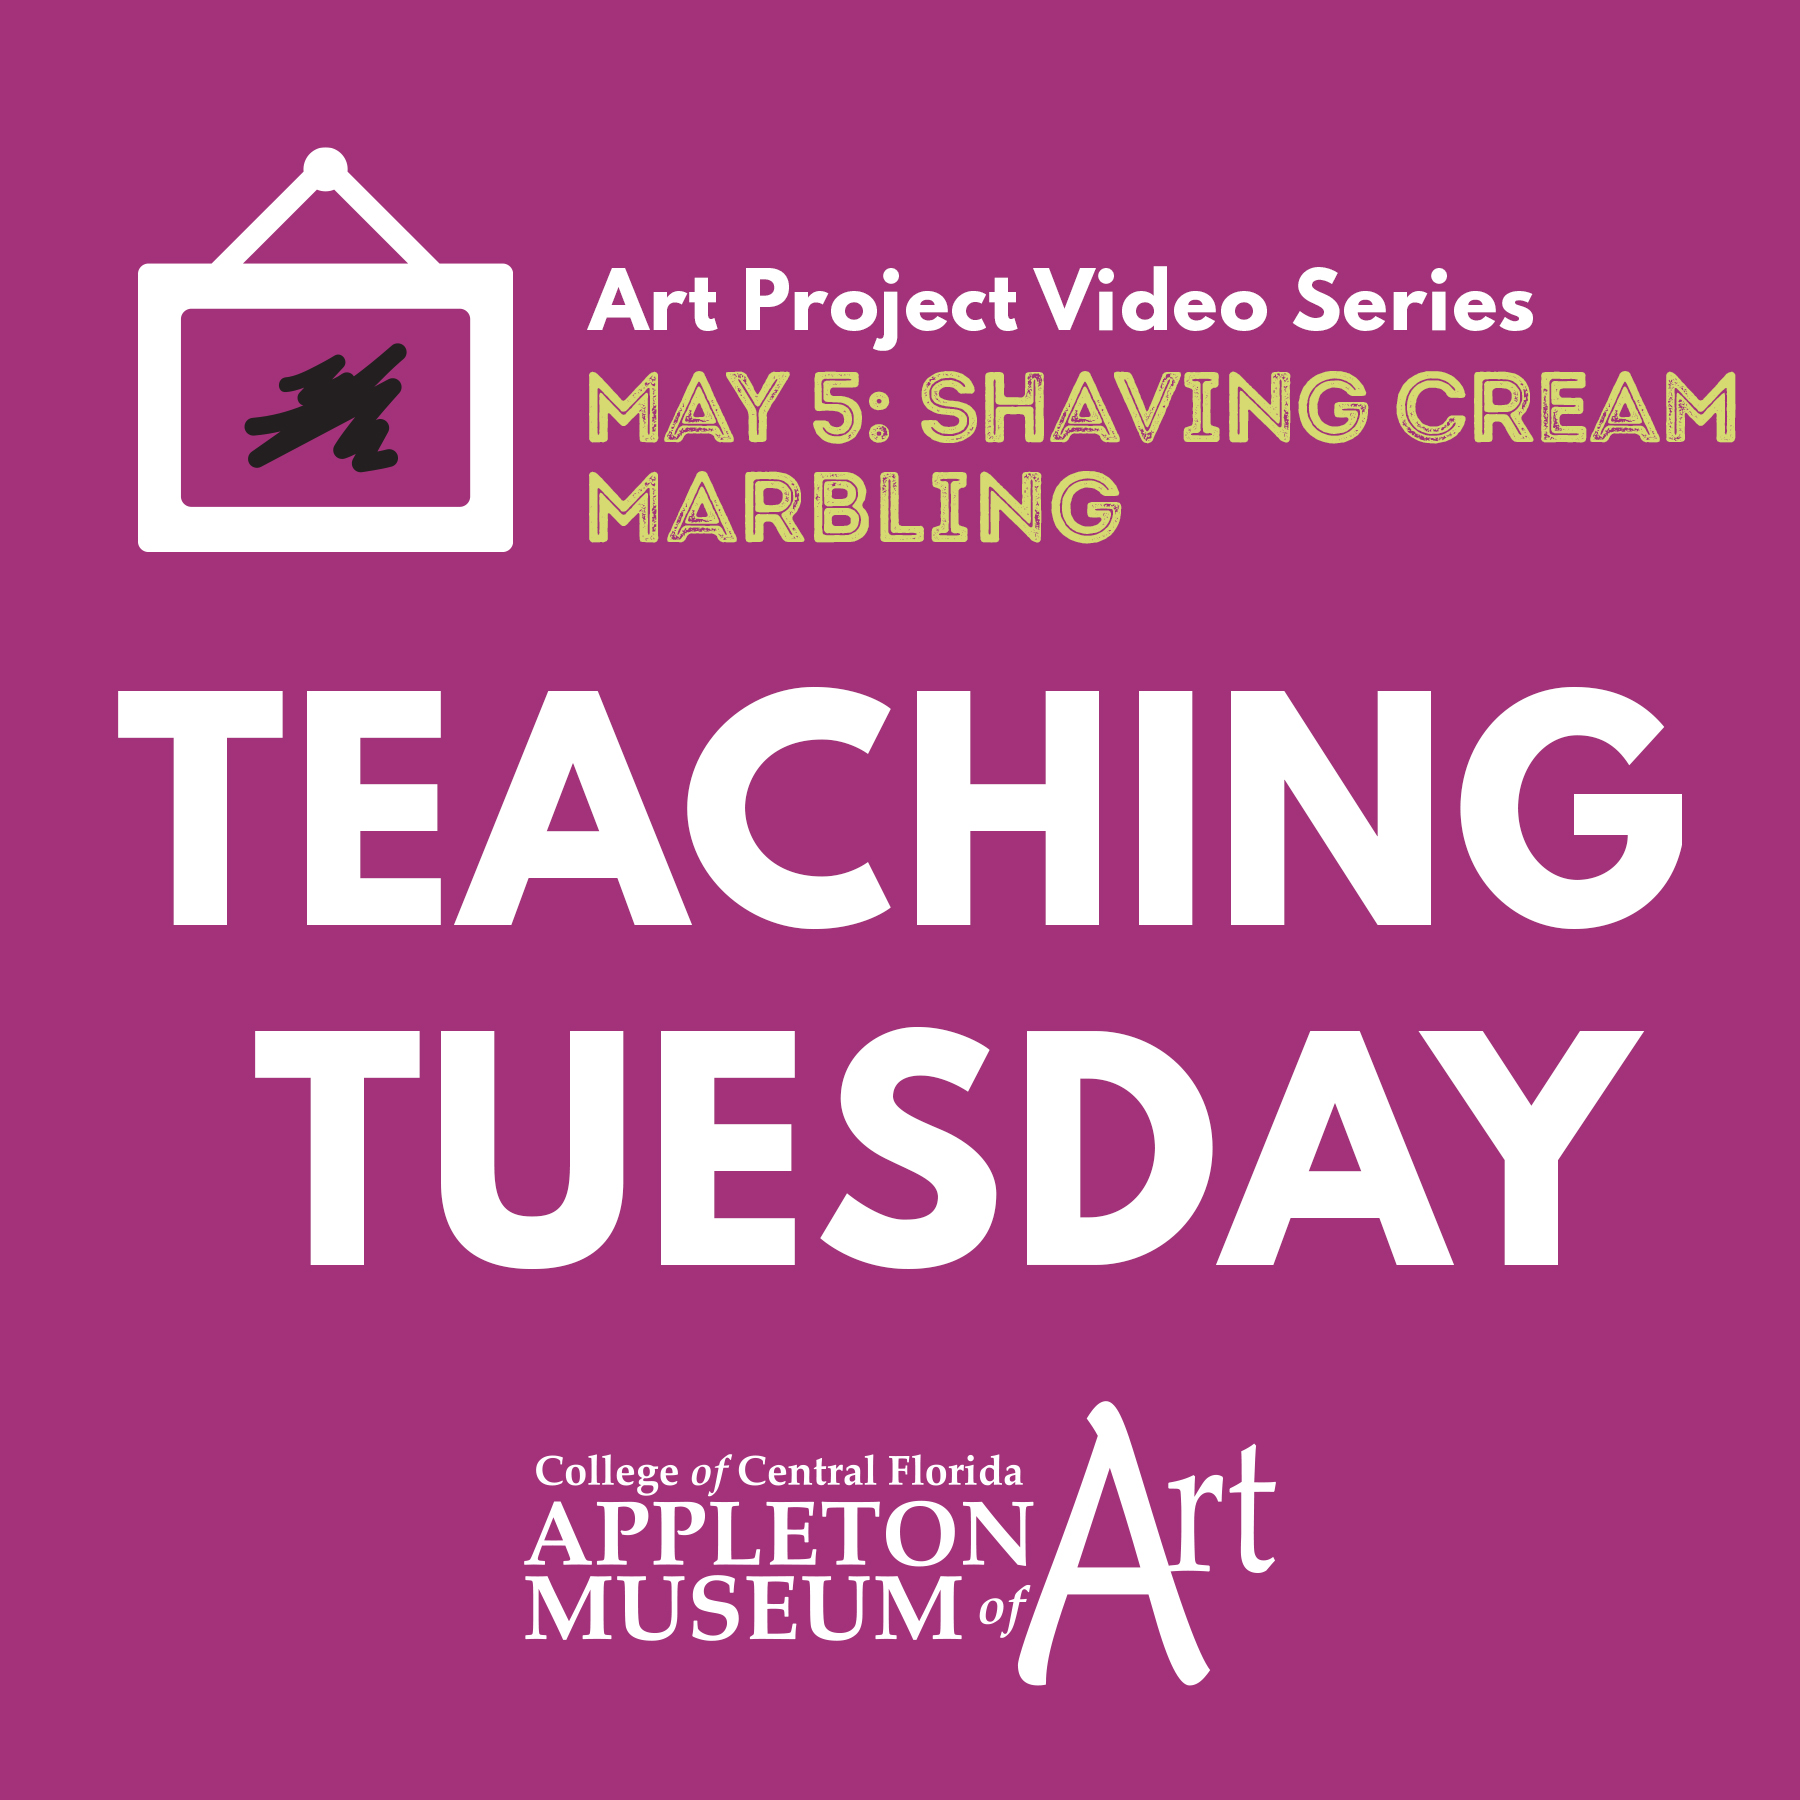 Teaching Tuesday: Shaving Cream Marbling